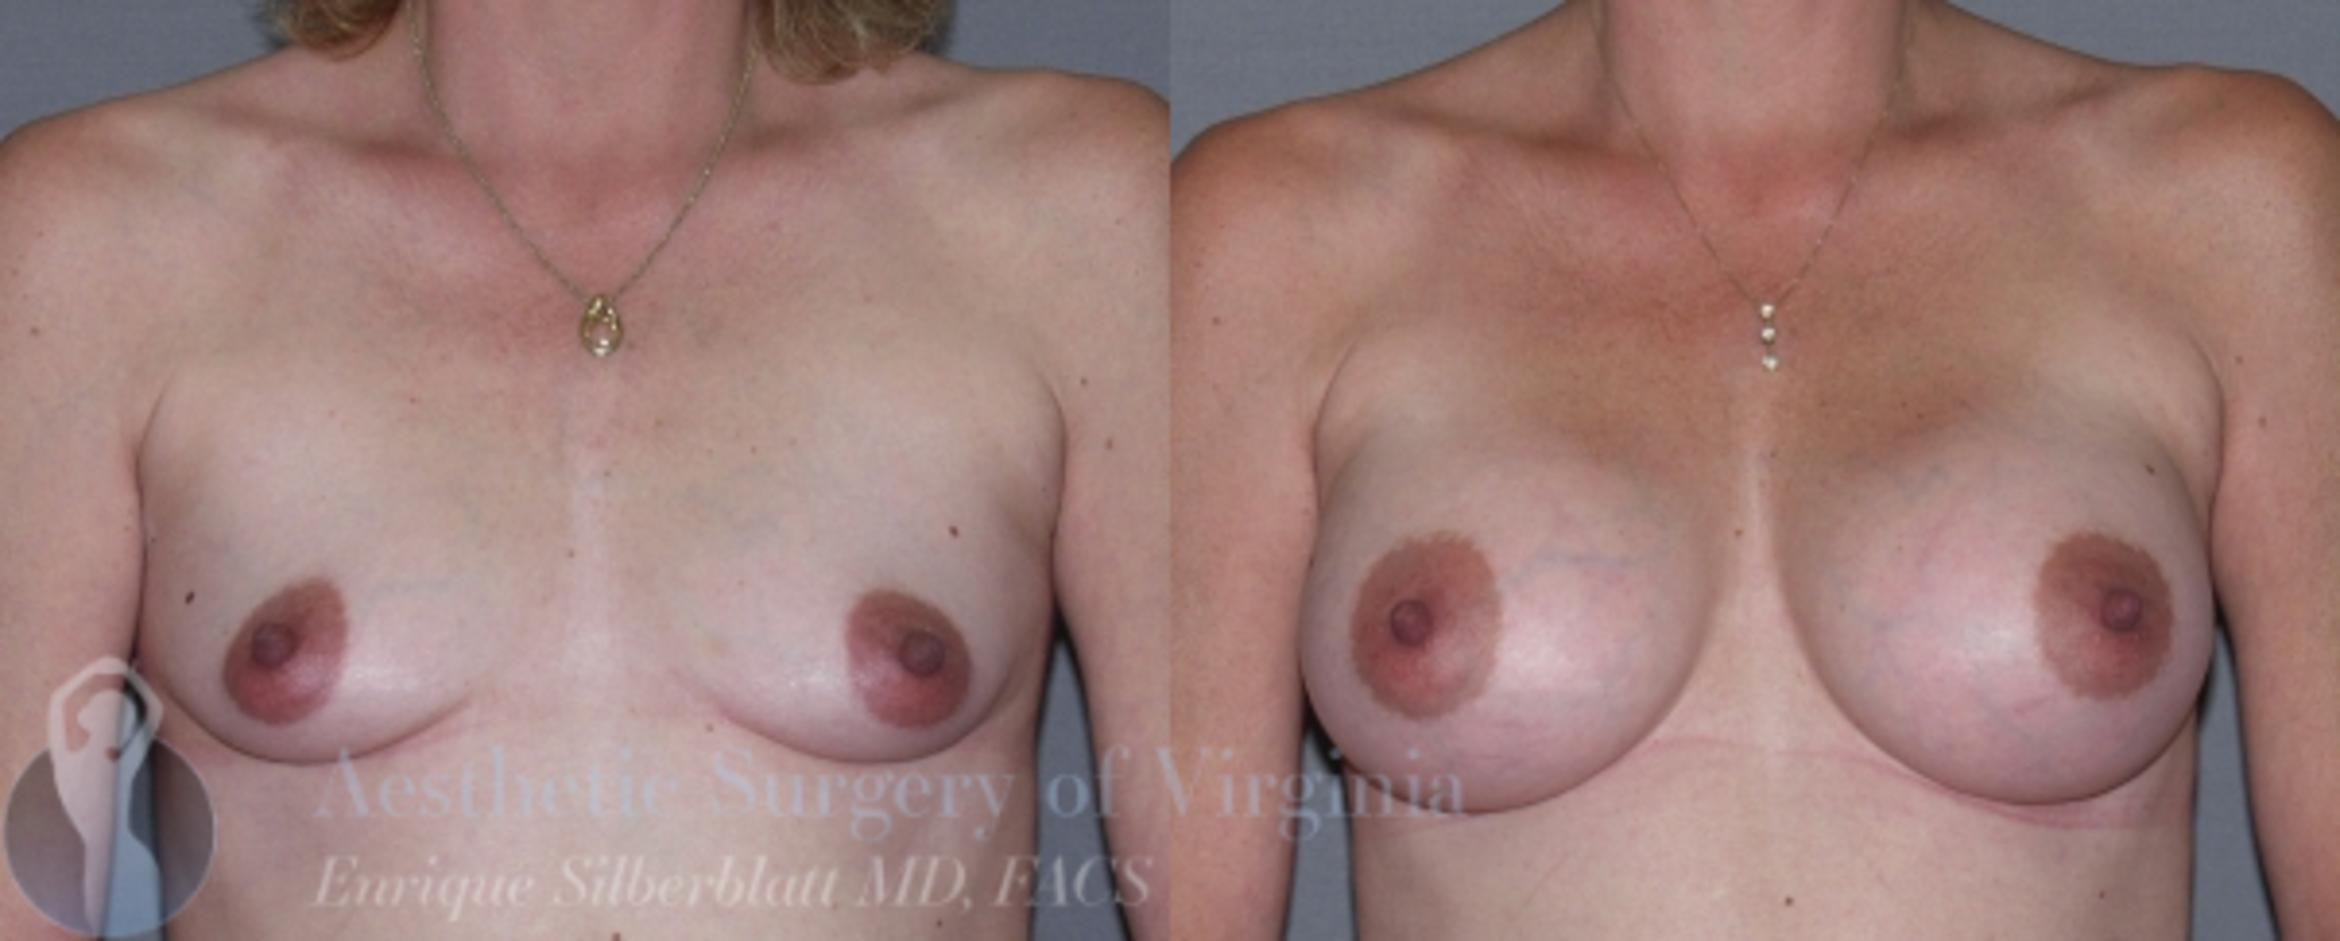 Breast Augmentation Case 12 Before & After View #1 | Roanoke, VA | Aesthetic Surgery of Virginia: Enrique Silberblatt, MD